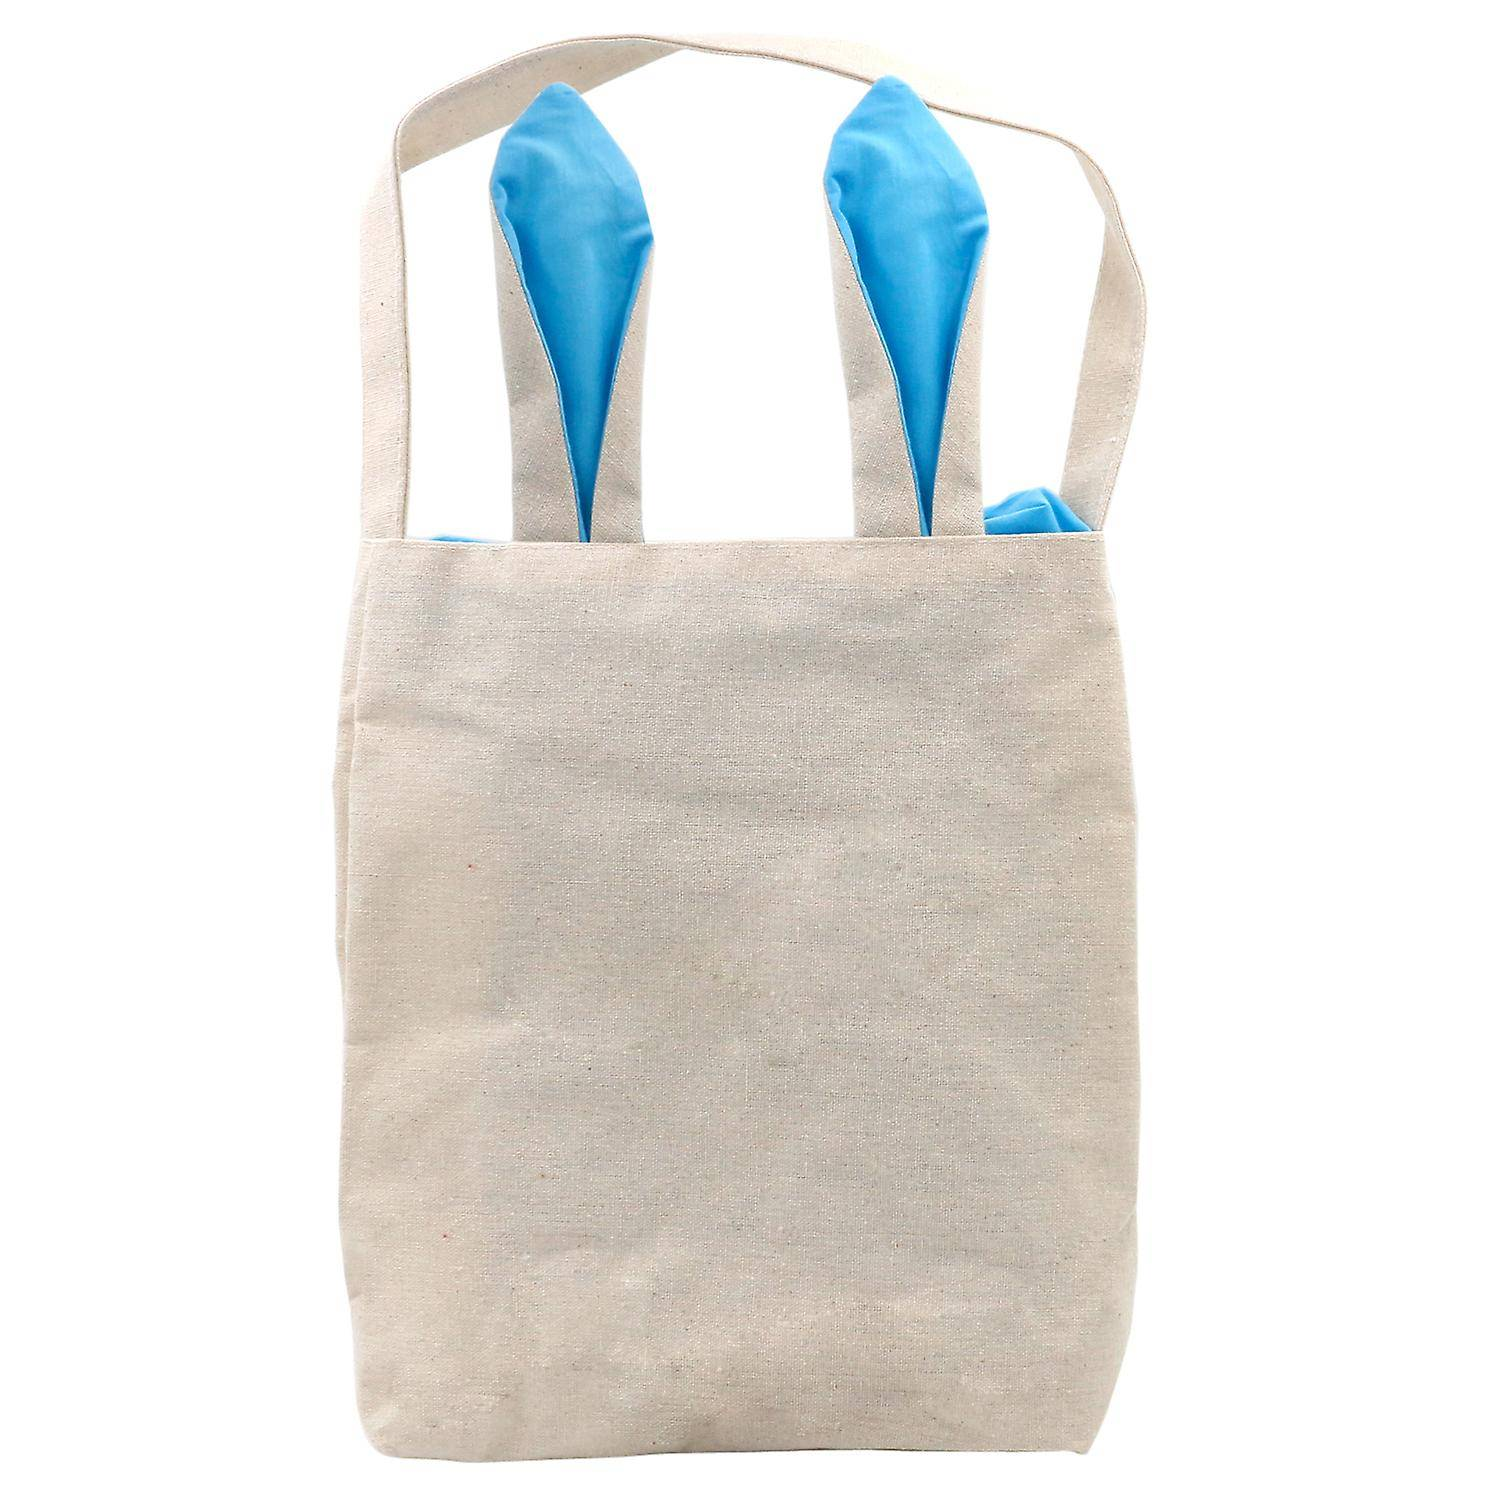 TRIXES Easter Blue Bunny Ears Canvas Carry Bag Party Rabbit Fun Acc...